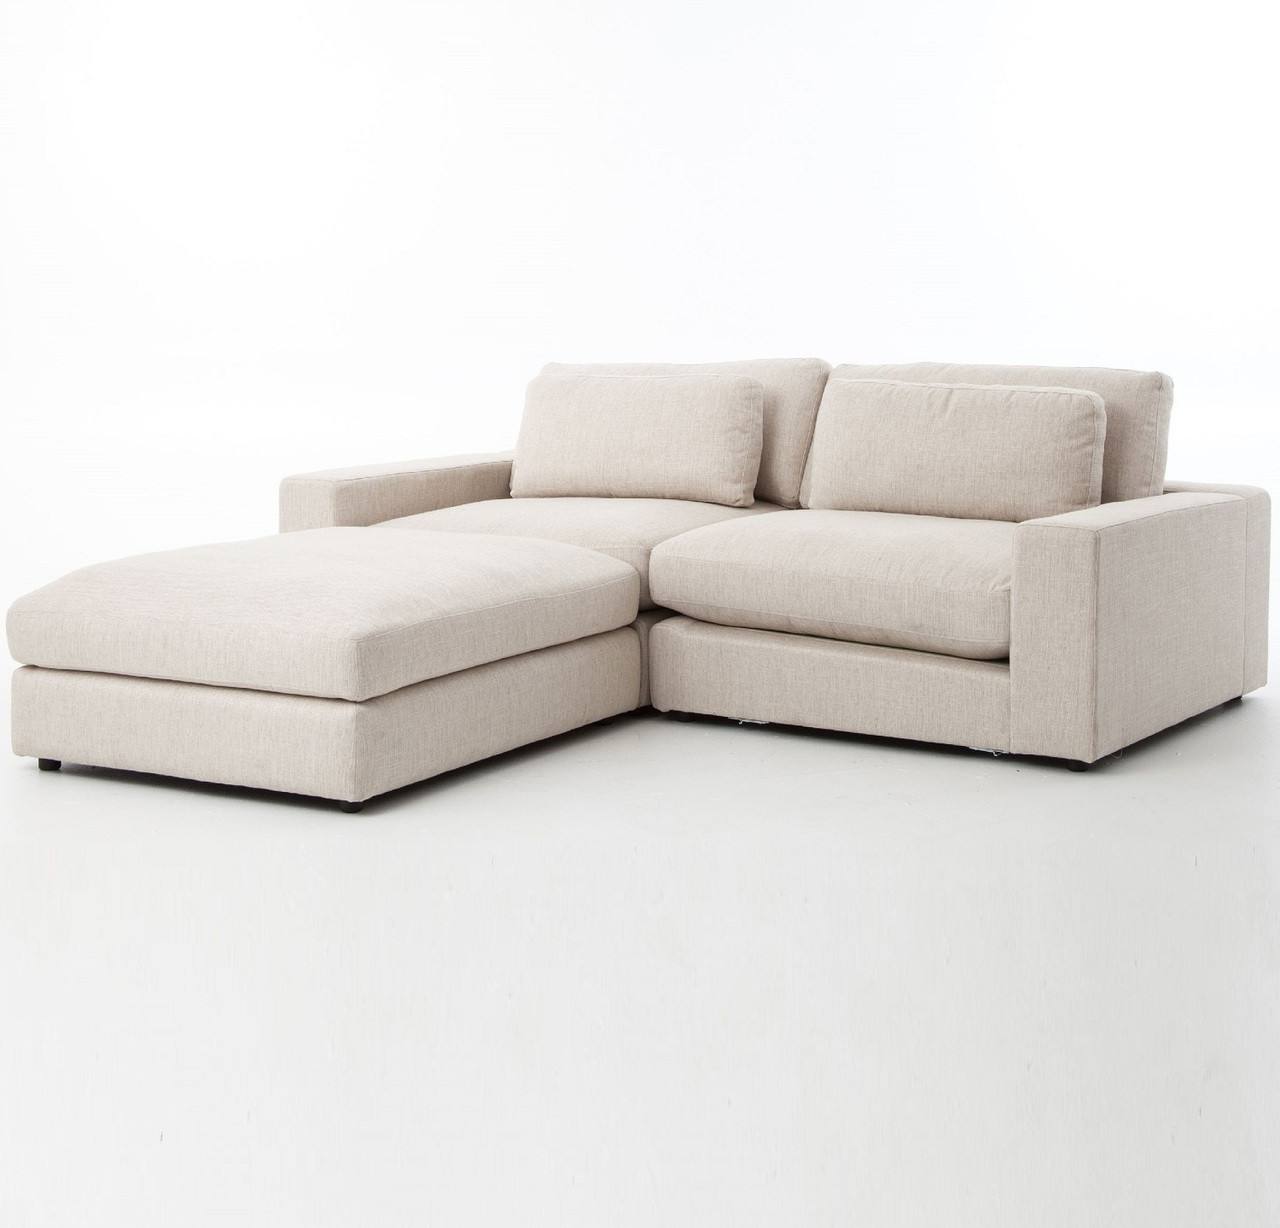 Bloor beige contemporary 3 piece small sectional sofa for 3 piece small sectional sofa